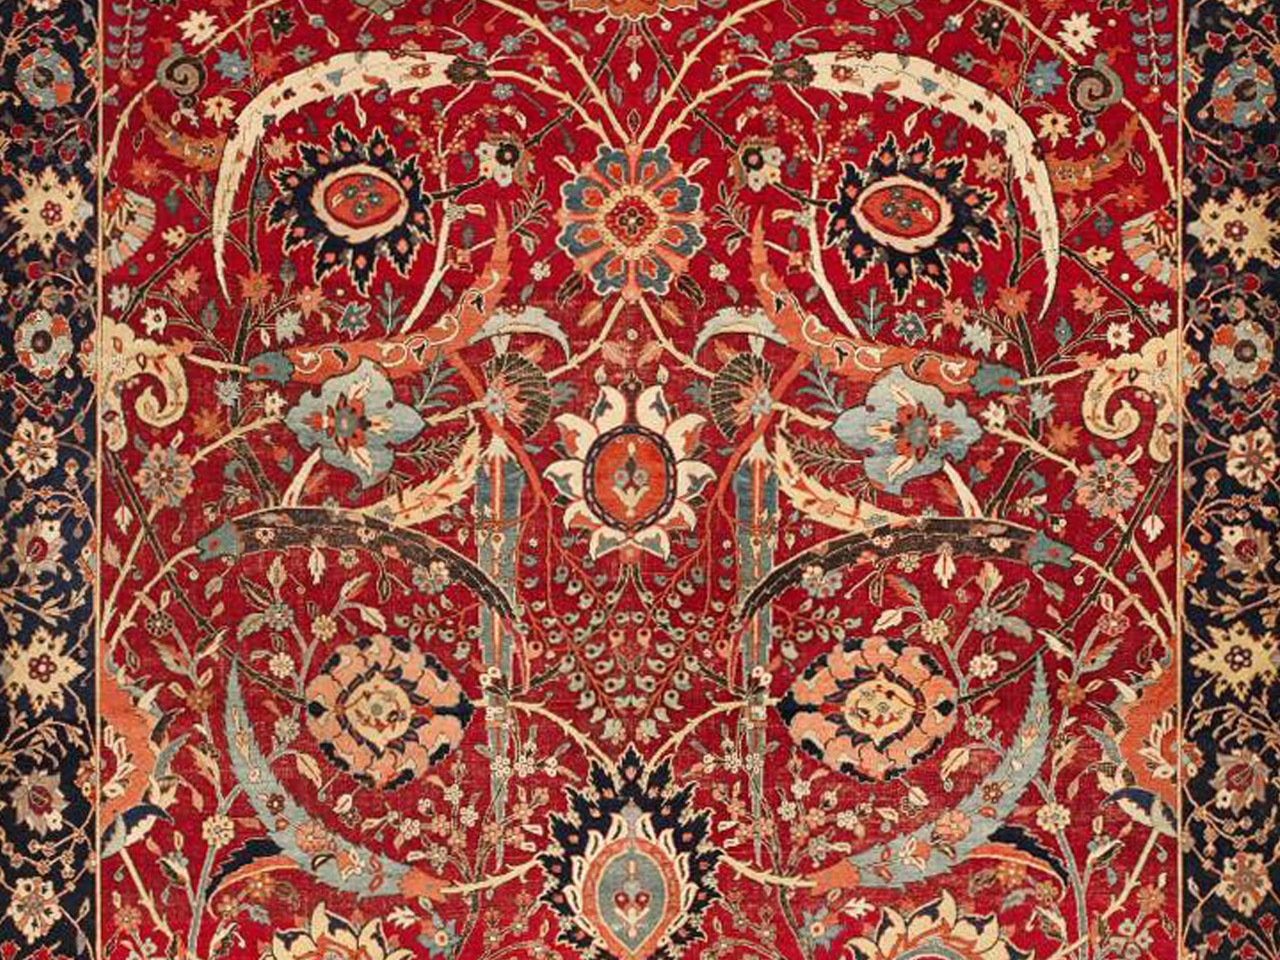 Persian Rug From 1600s Fetches Record